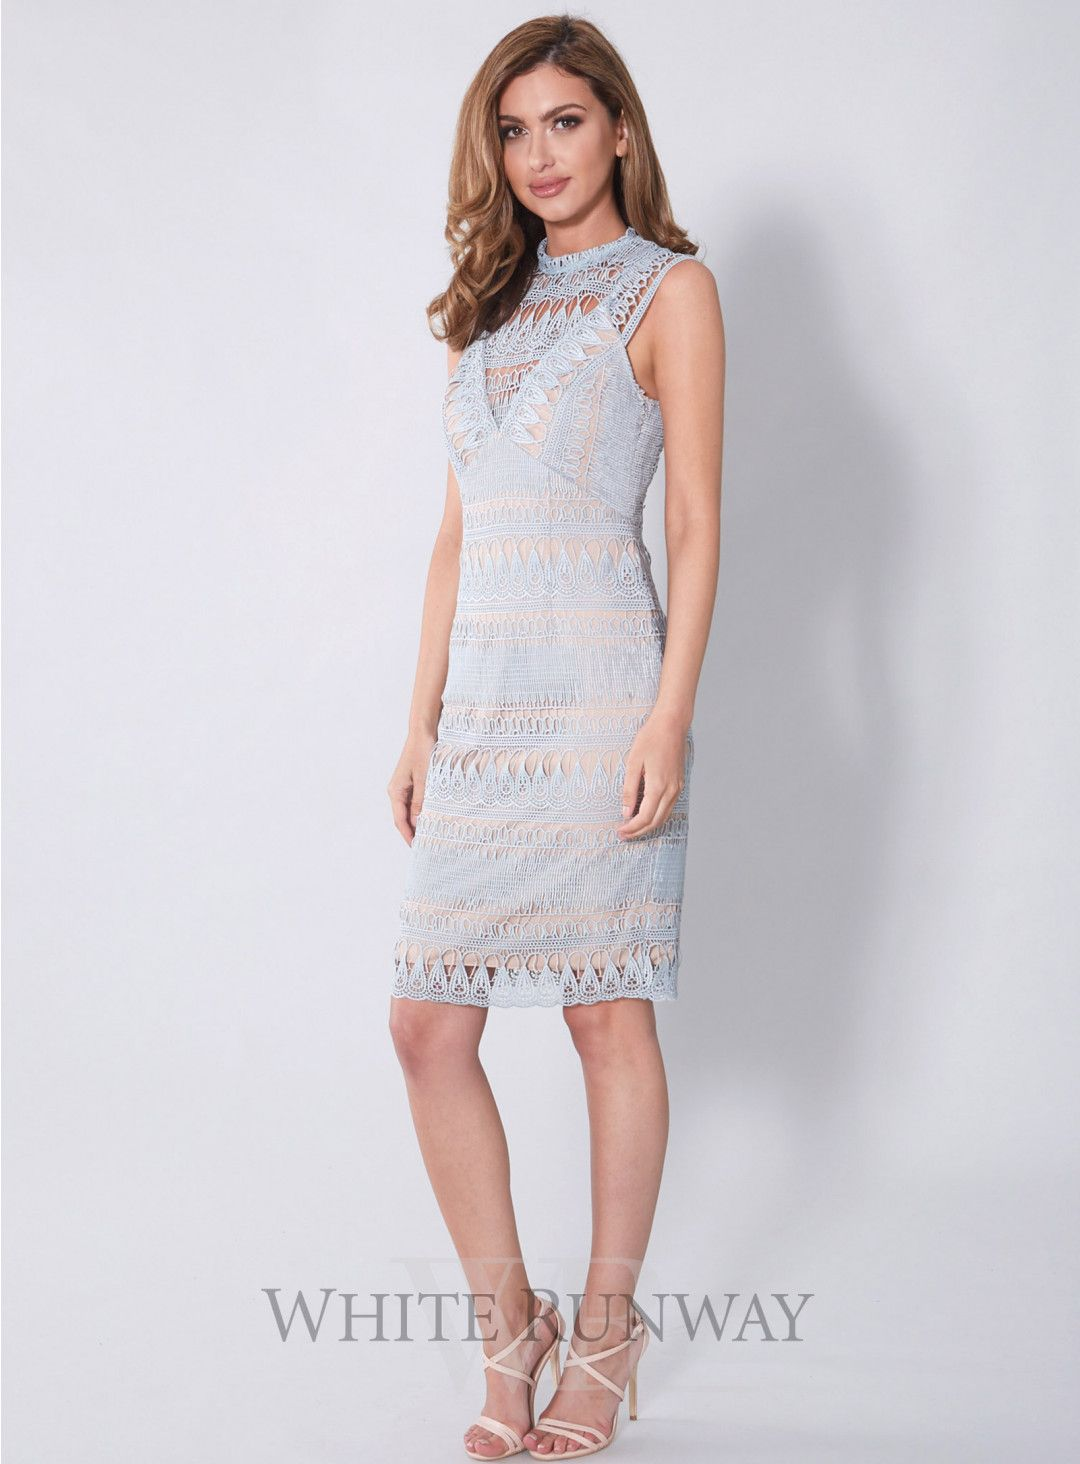 Her day lace dress by winona a stunning lace dress by australian